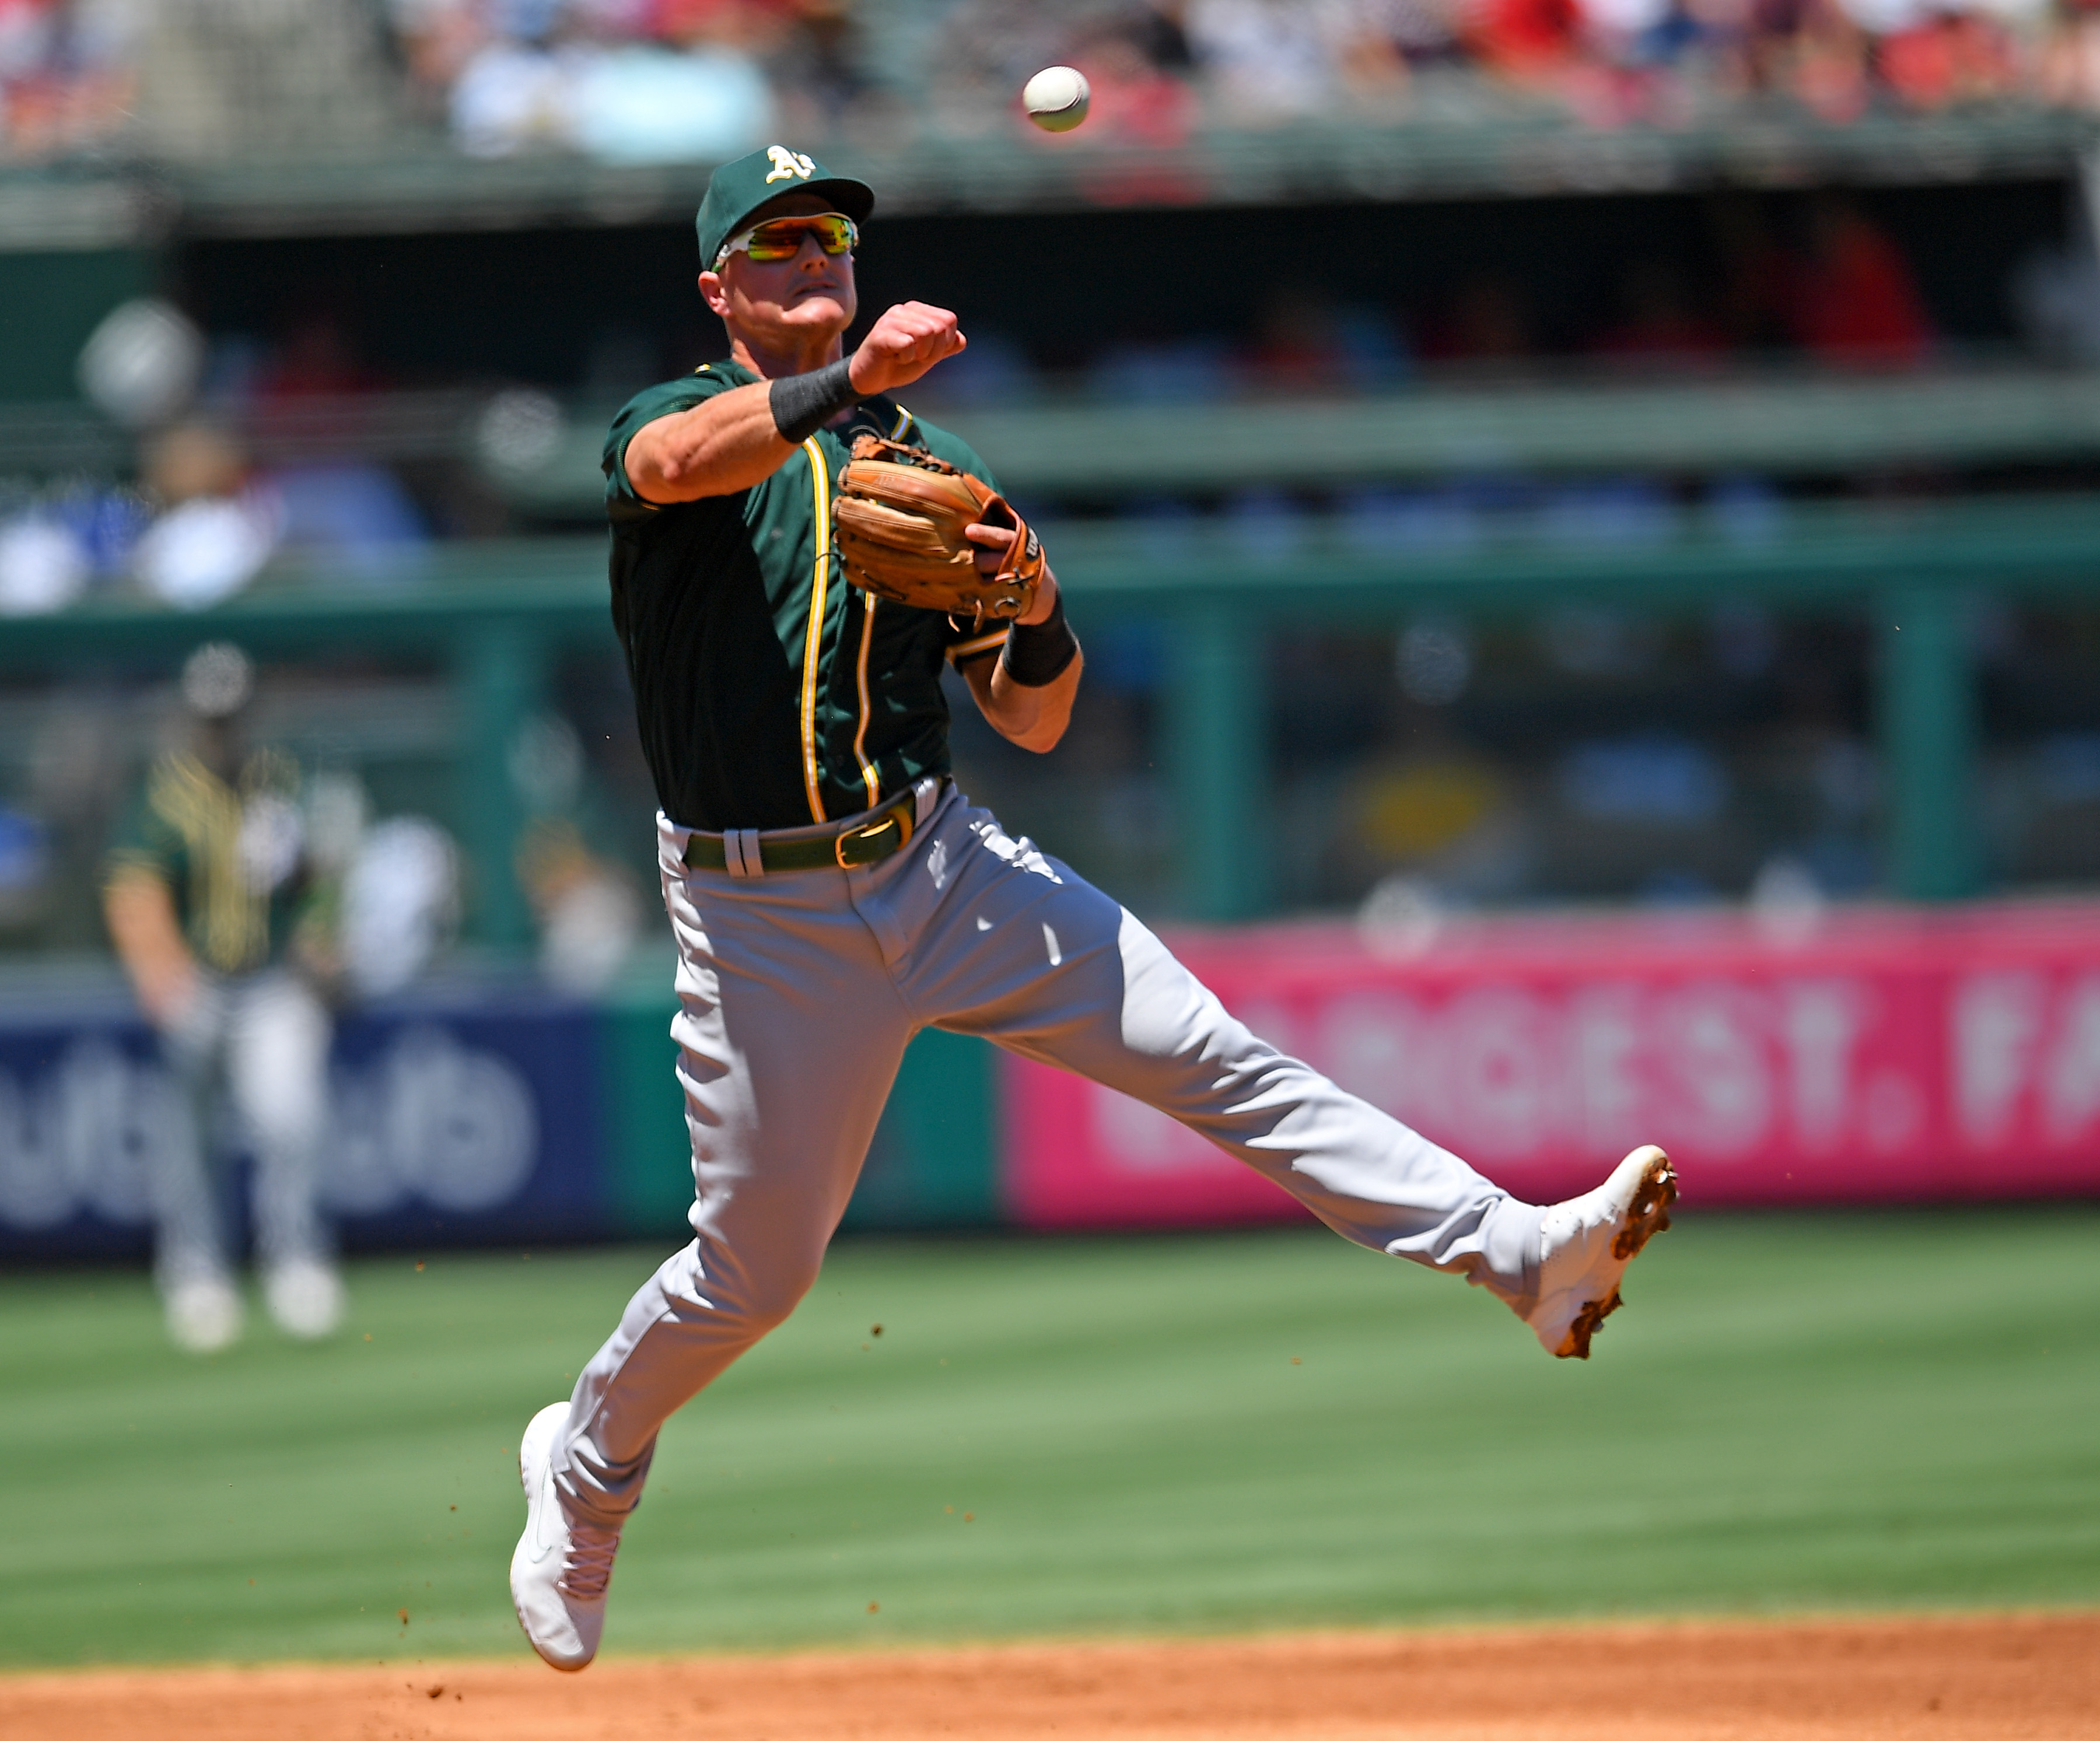 San Diego Padres vs Oakland Athletics Prediction, 8/4/2021 MLB Pick, Tips and Odds